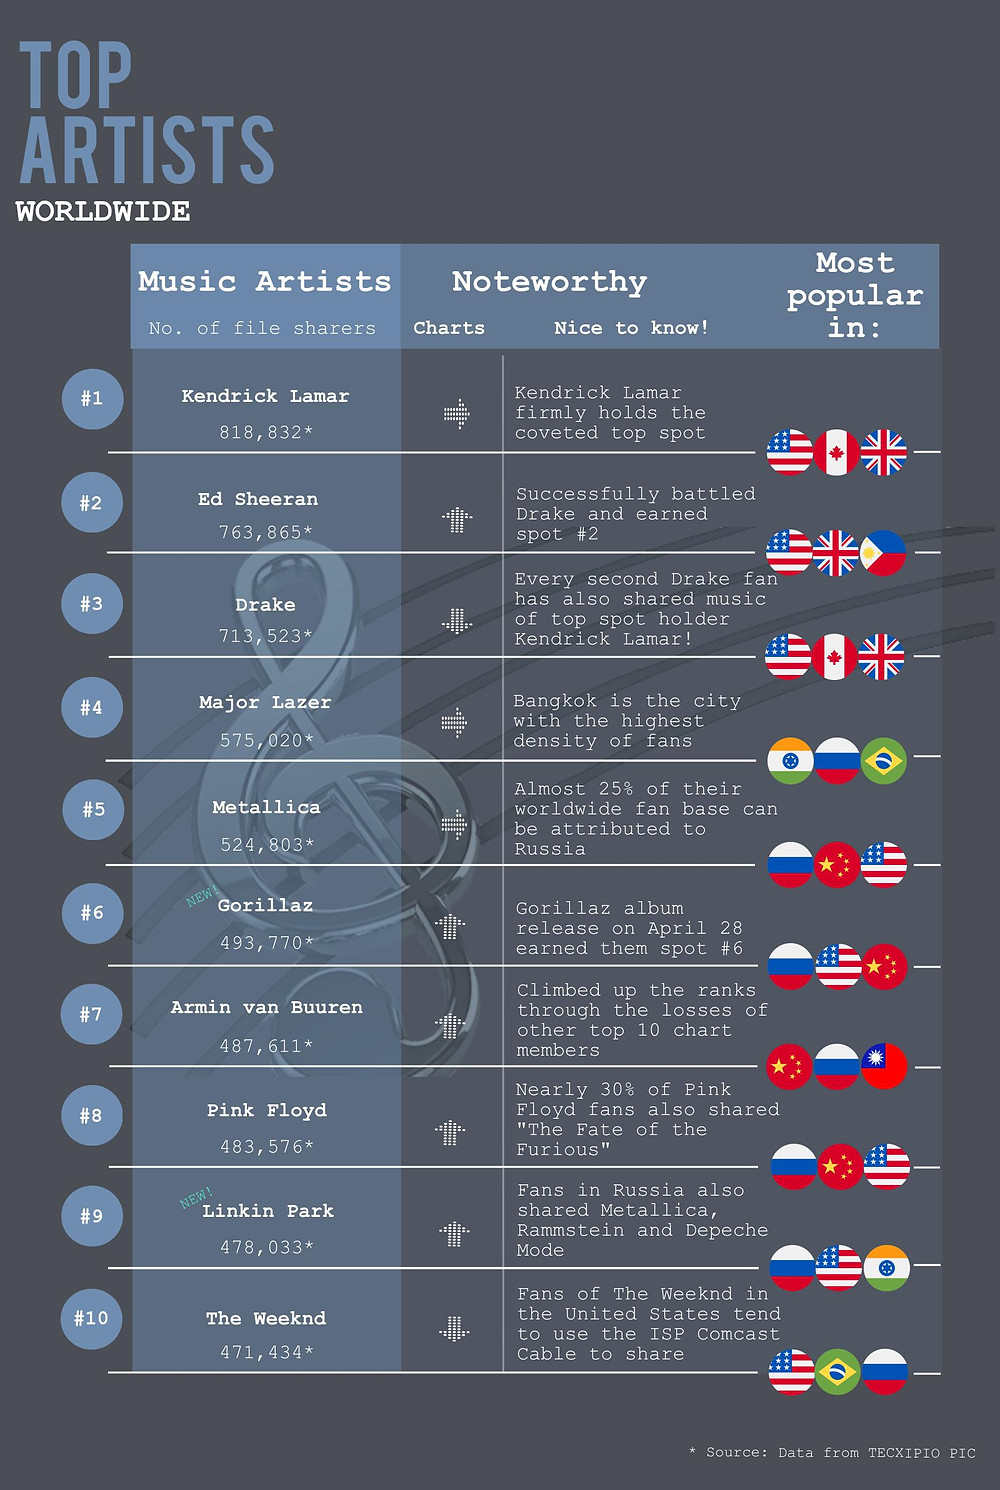 The second part of the TECXIPIO infographic shows the top50 music artists and in which countries they are most popular among file sharers